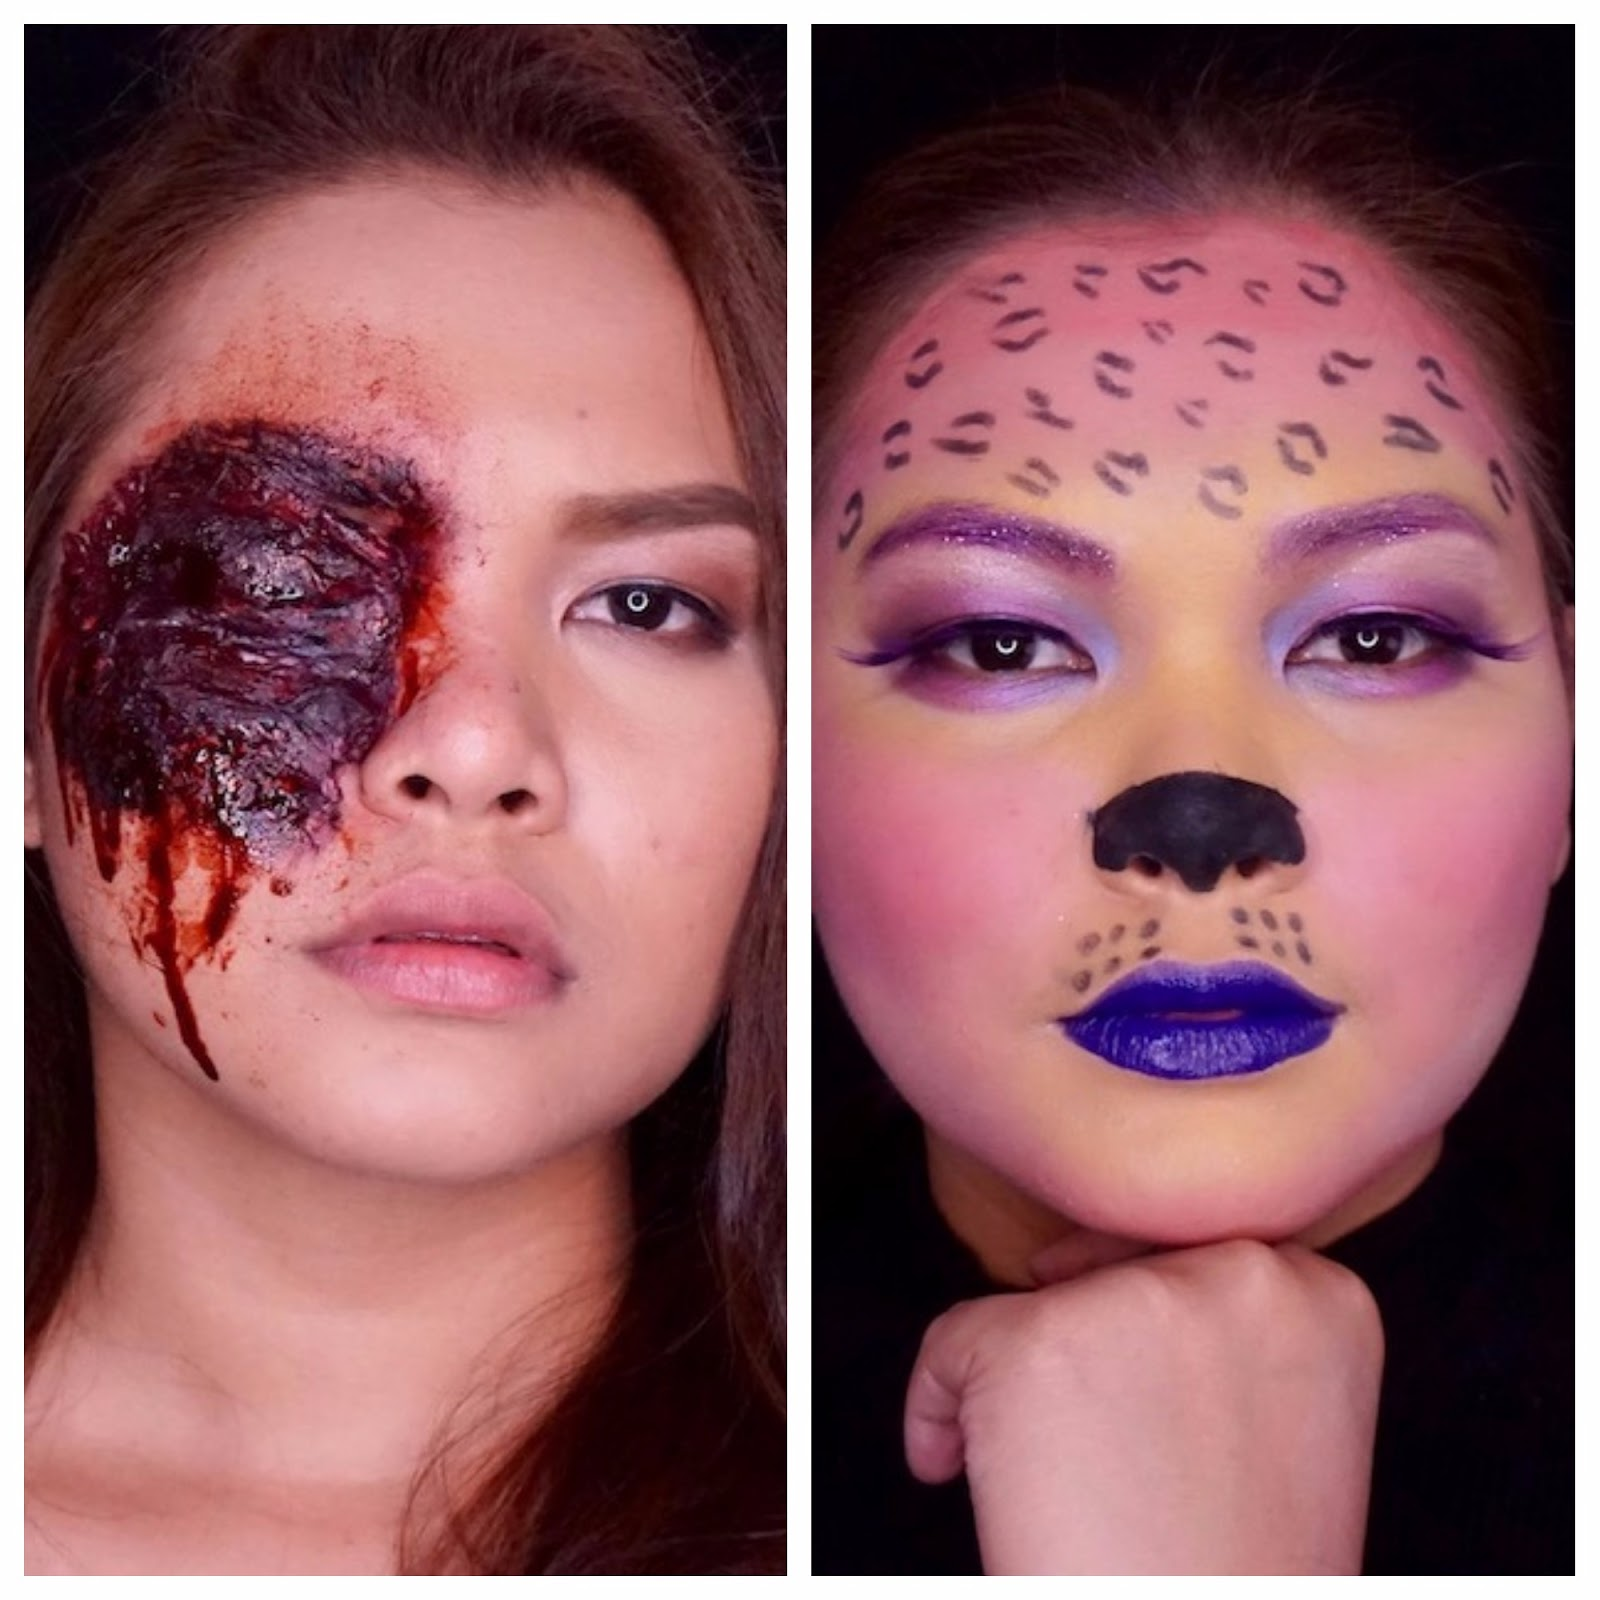 One brand makeup tutorial bys 45 minute halloween looks gore and got no time or skills for awesome halloween makeup youre reading the right post then in this one makeup tutorial series ill share with you two looks baditri Choice Image